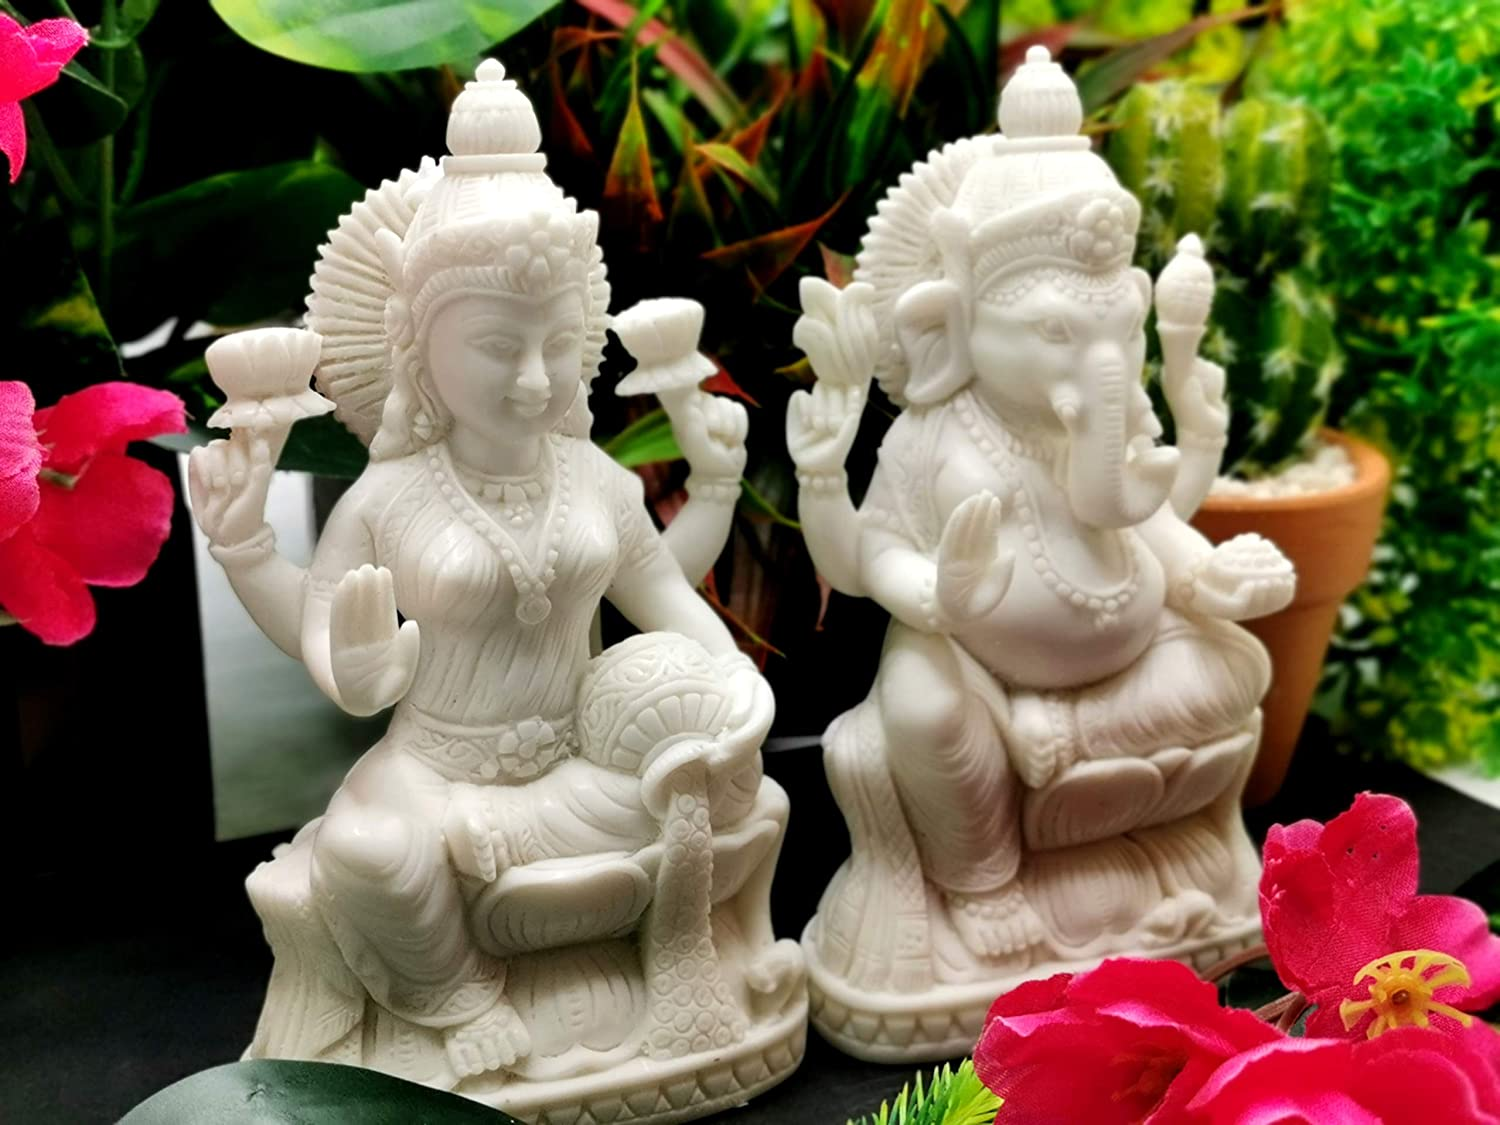 Laxmi Ganesha carving in marble dust 5.5 inches Diwali special gift Lakshmi Ganesh statue in pristine white